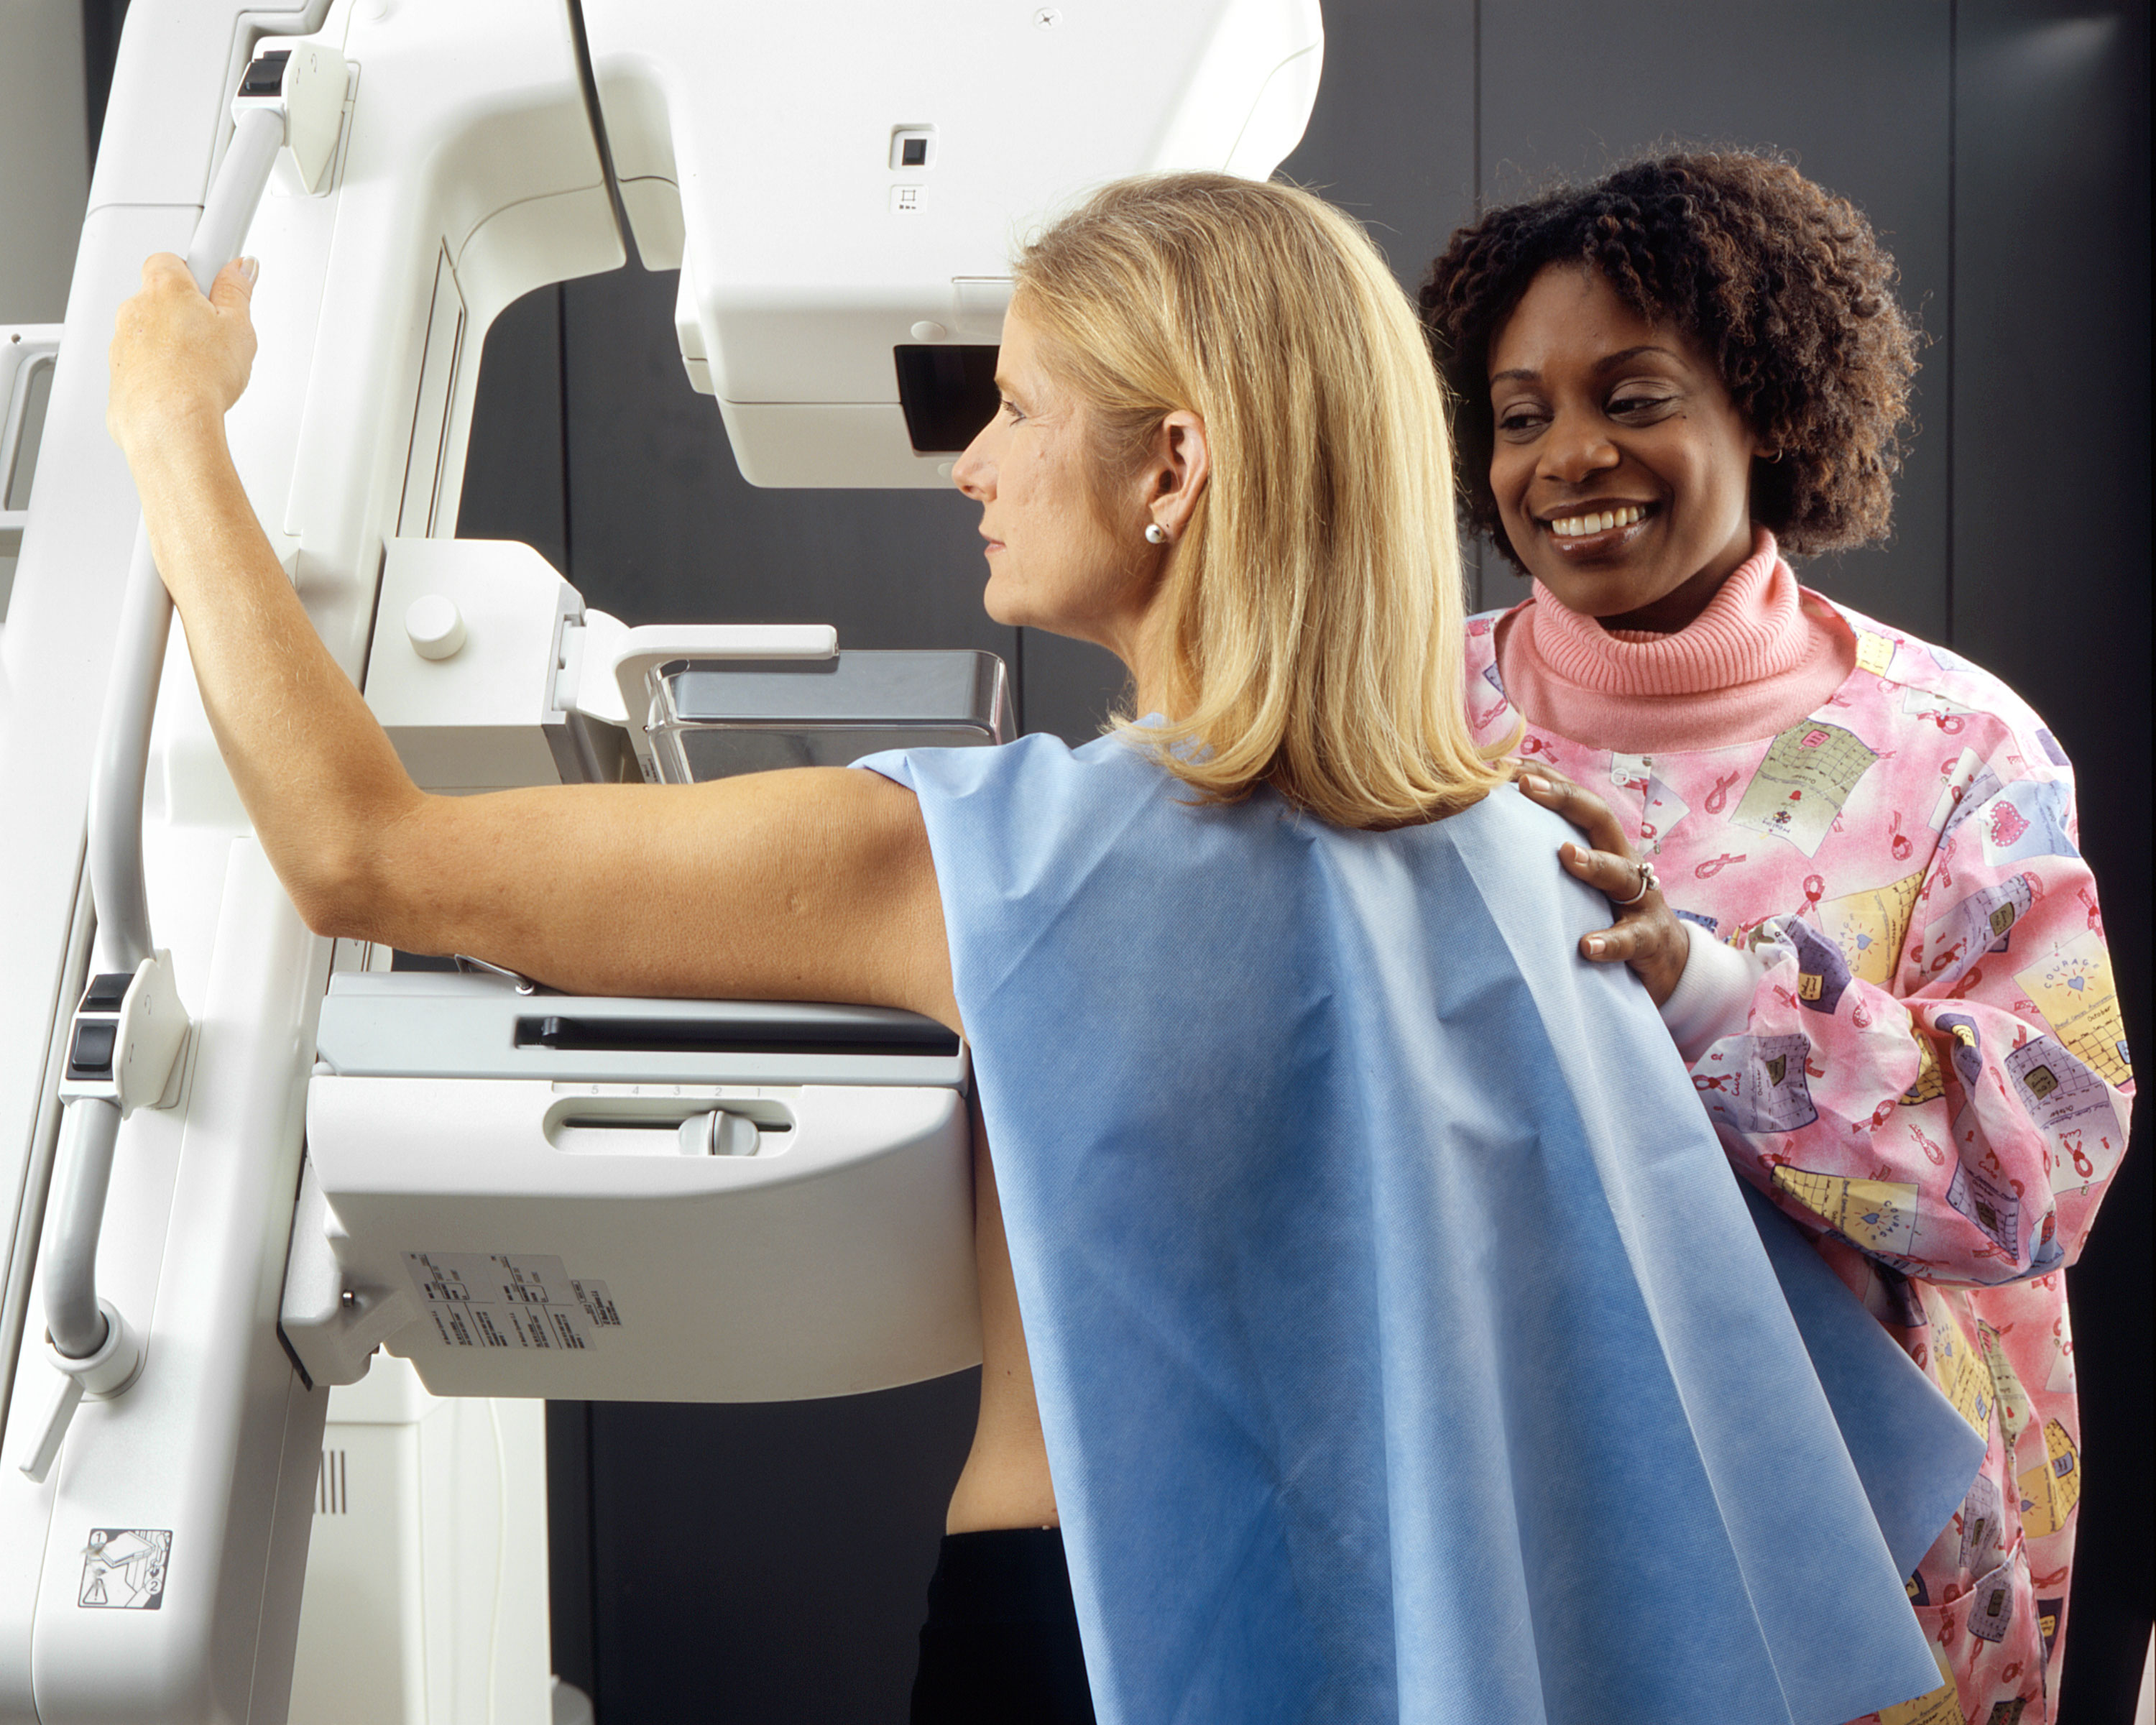 Get your mammogram with Dr. Sopp